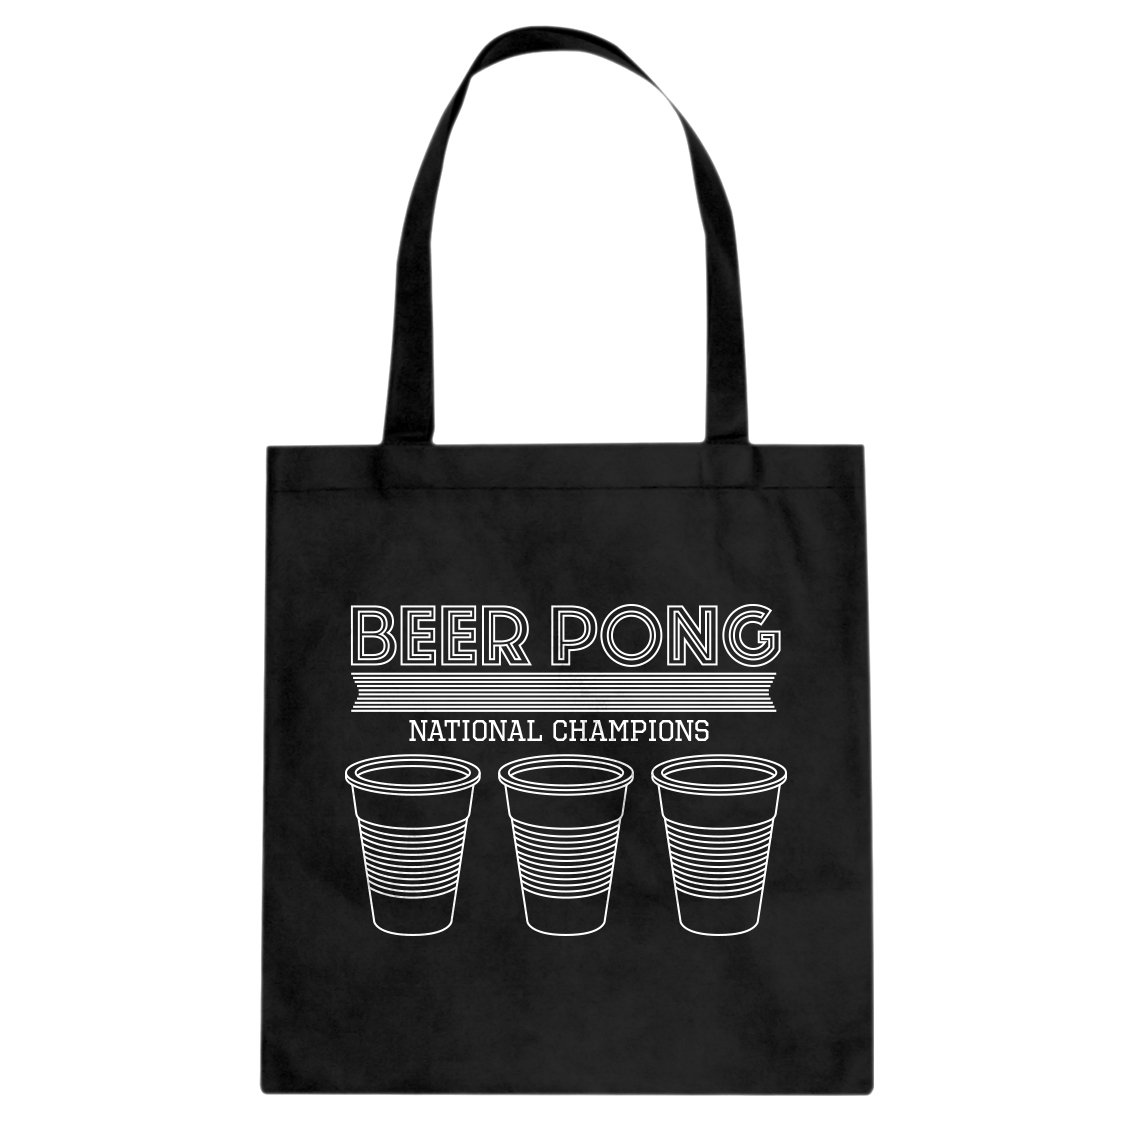 Indica Plateau Beer Pong National Champions Cotton Canvas Tote Bag